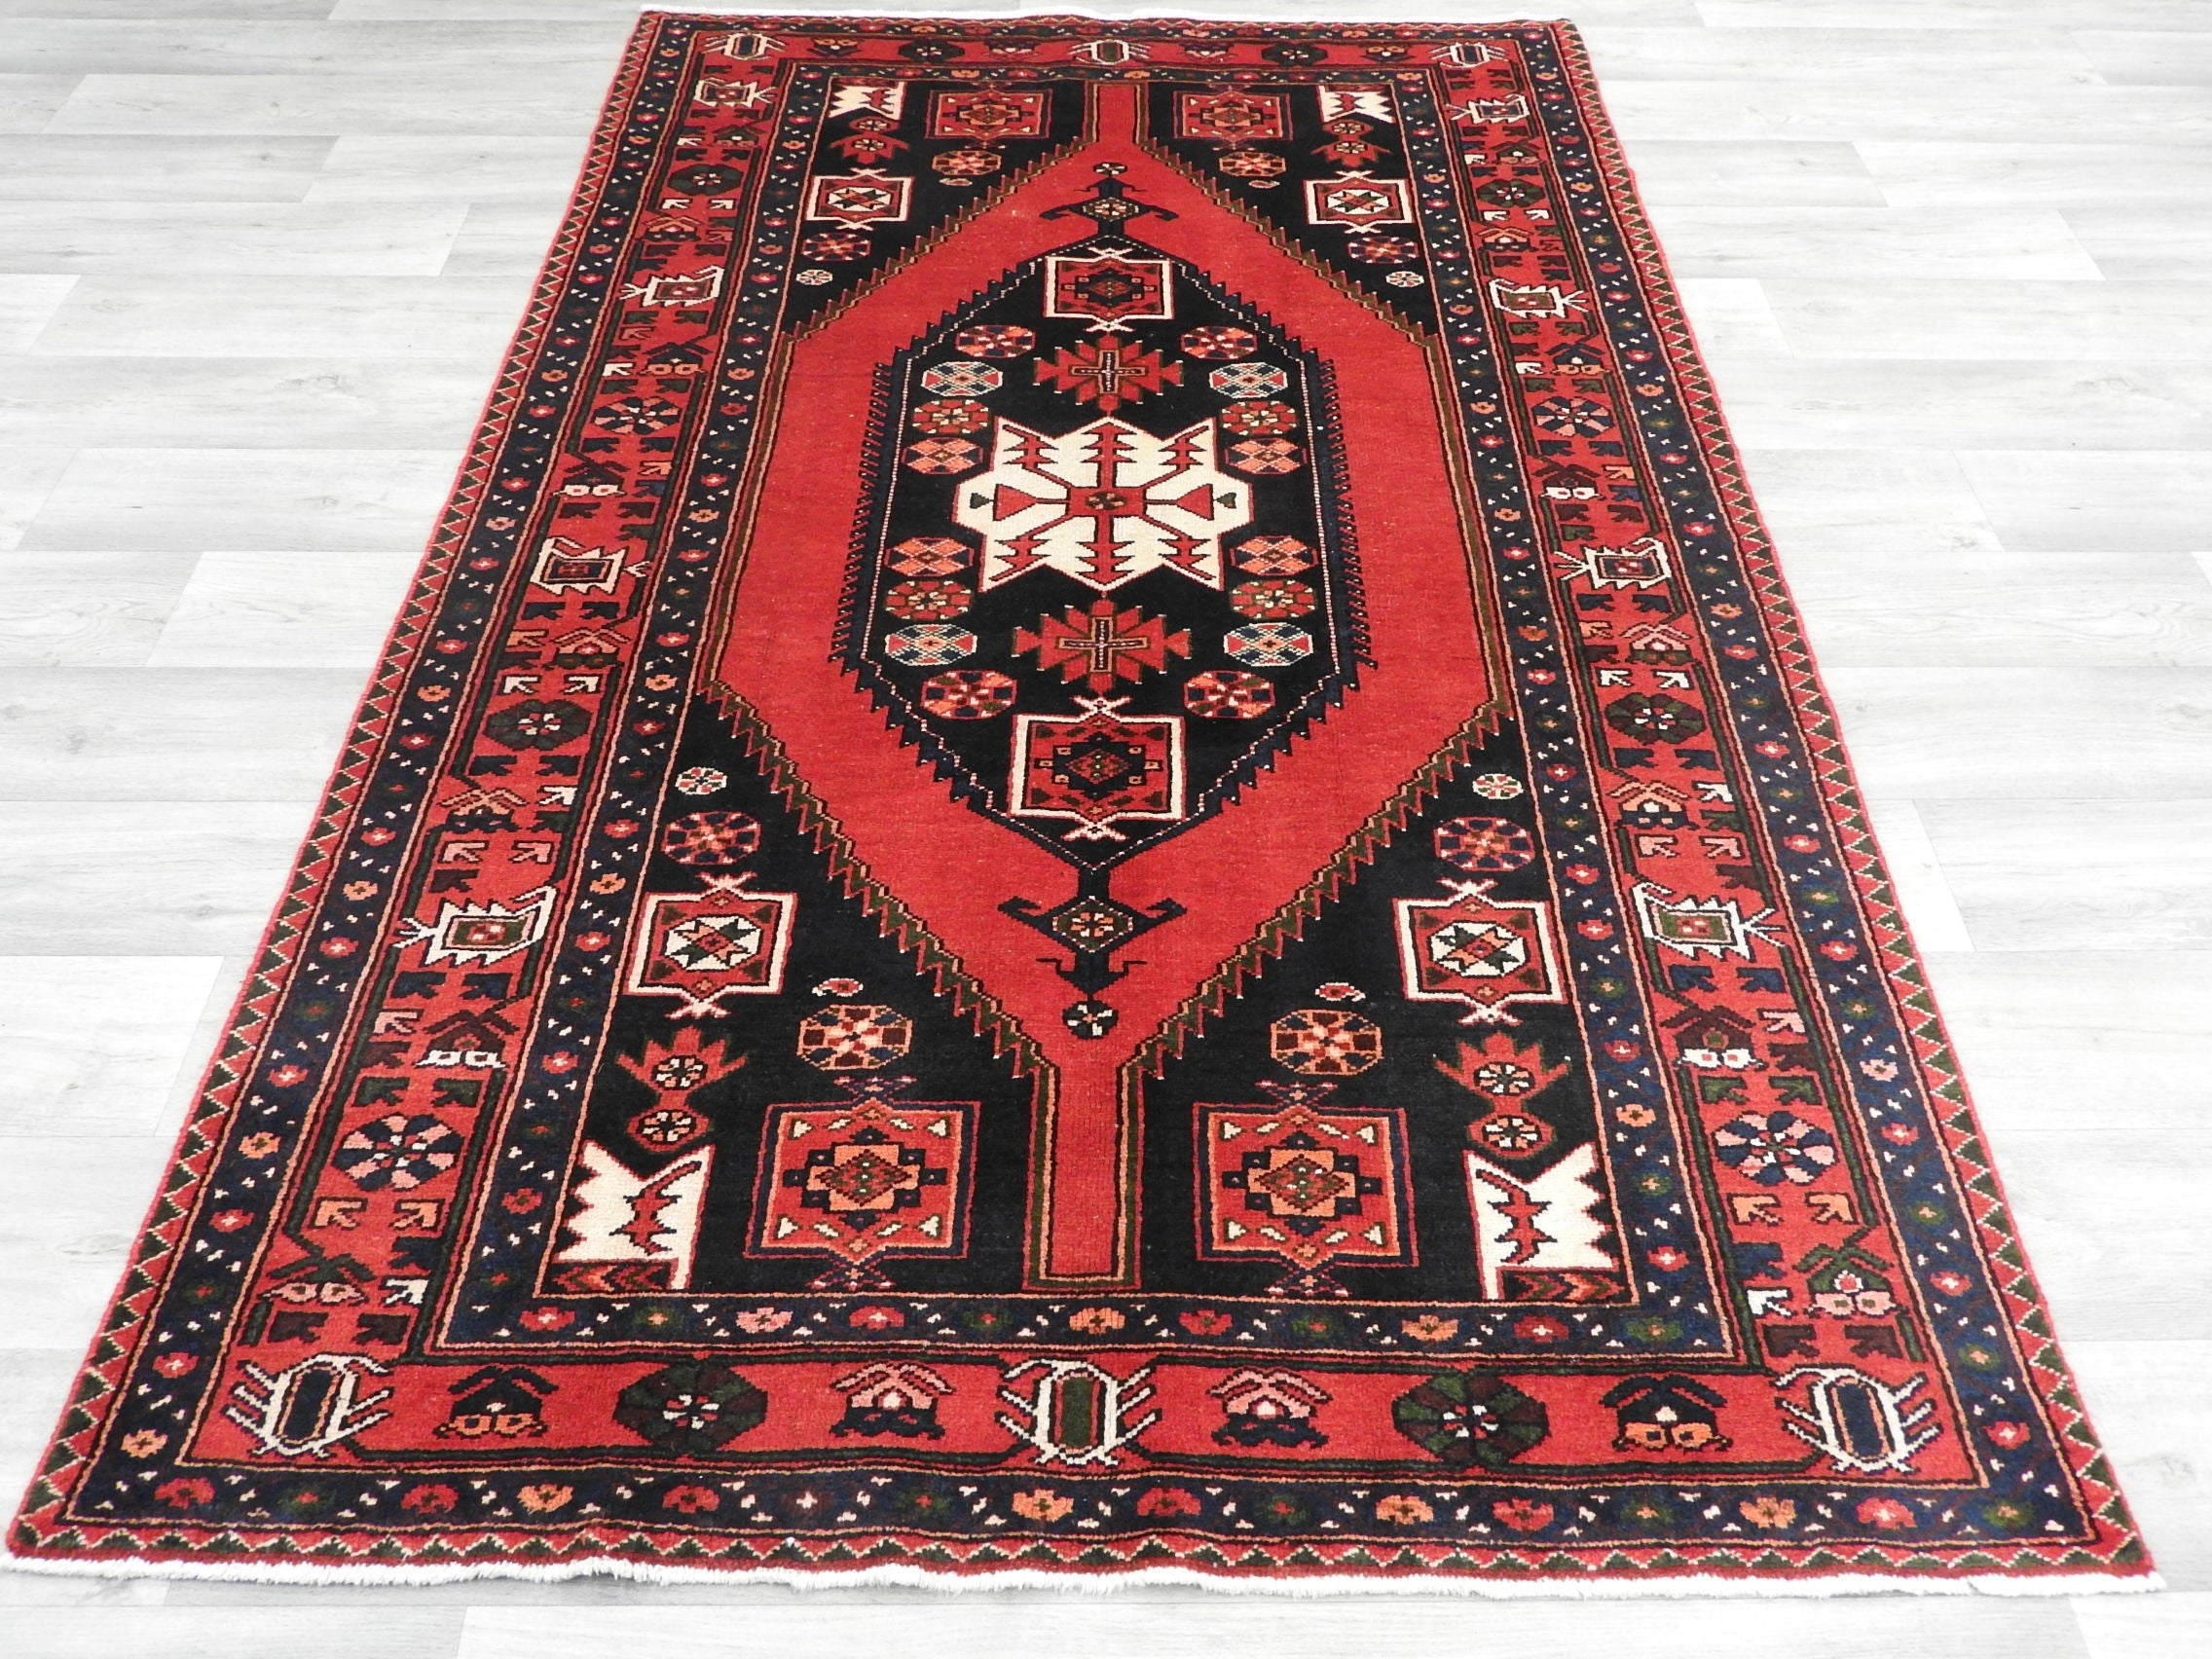 Persian Hand Knotted Saveh Rug Size: 202 x 135cm